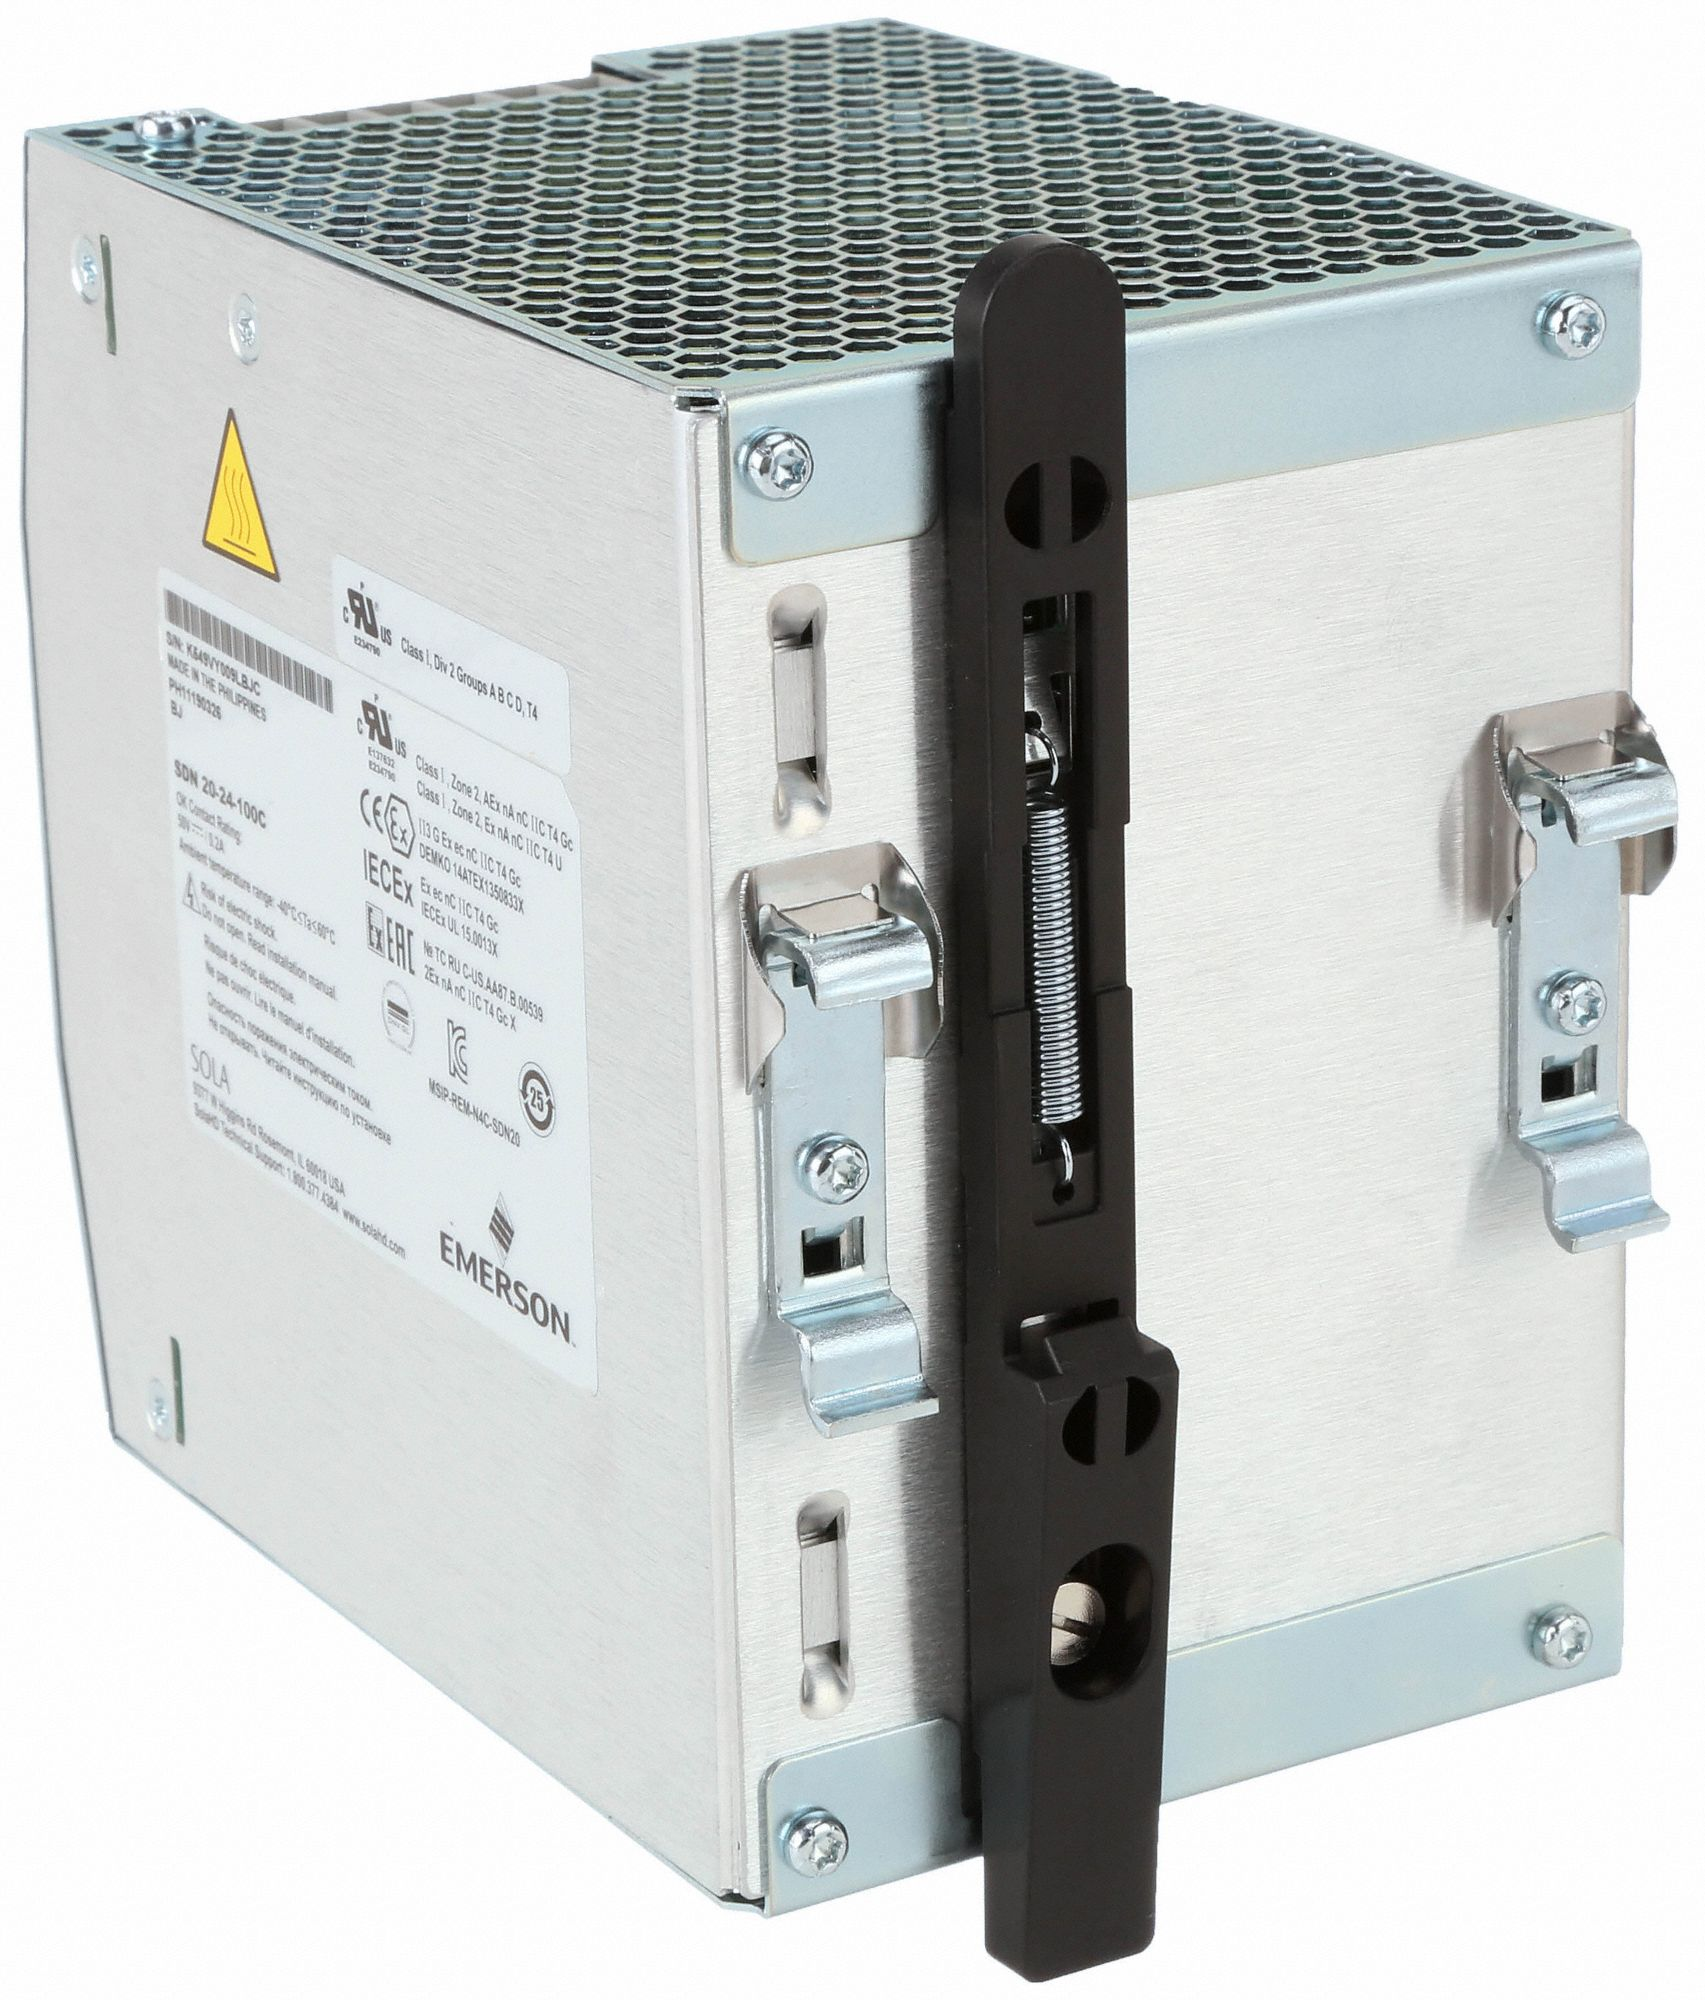 DC Power Supply,24VDC,20A,60Hz